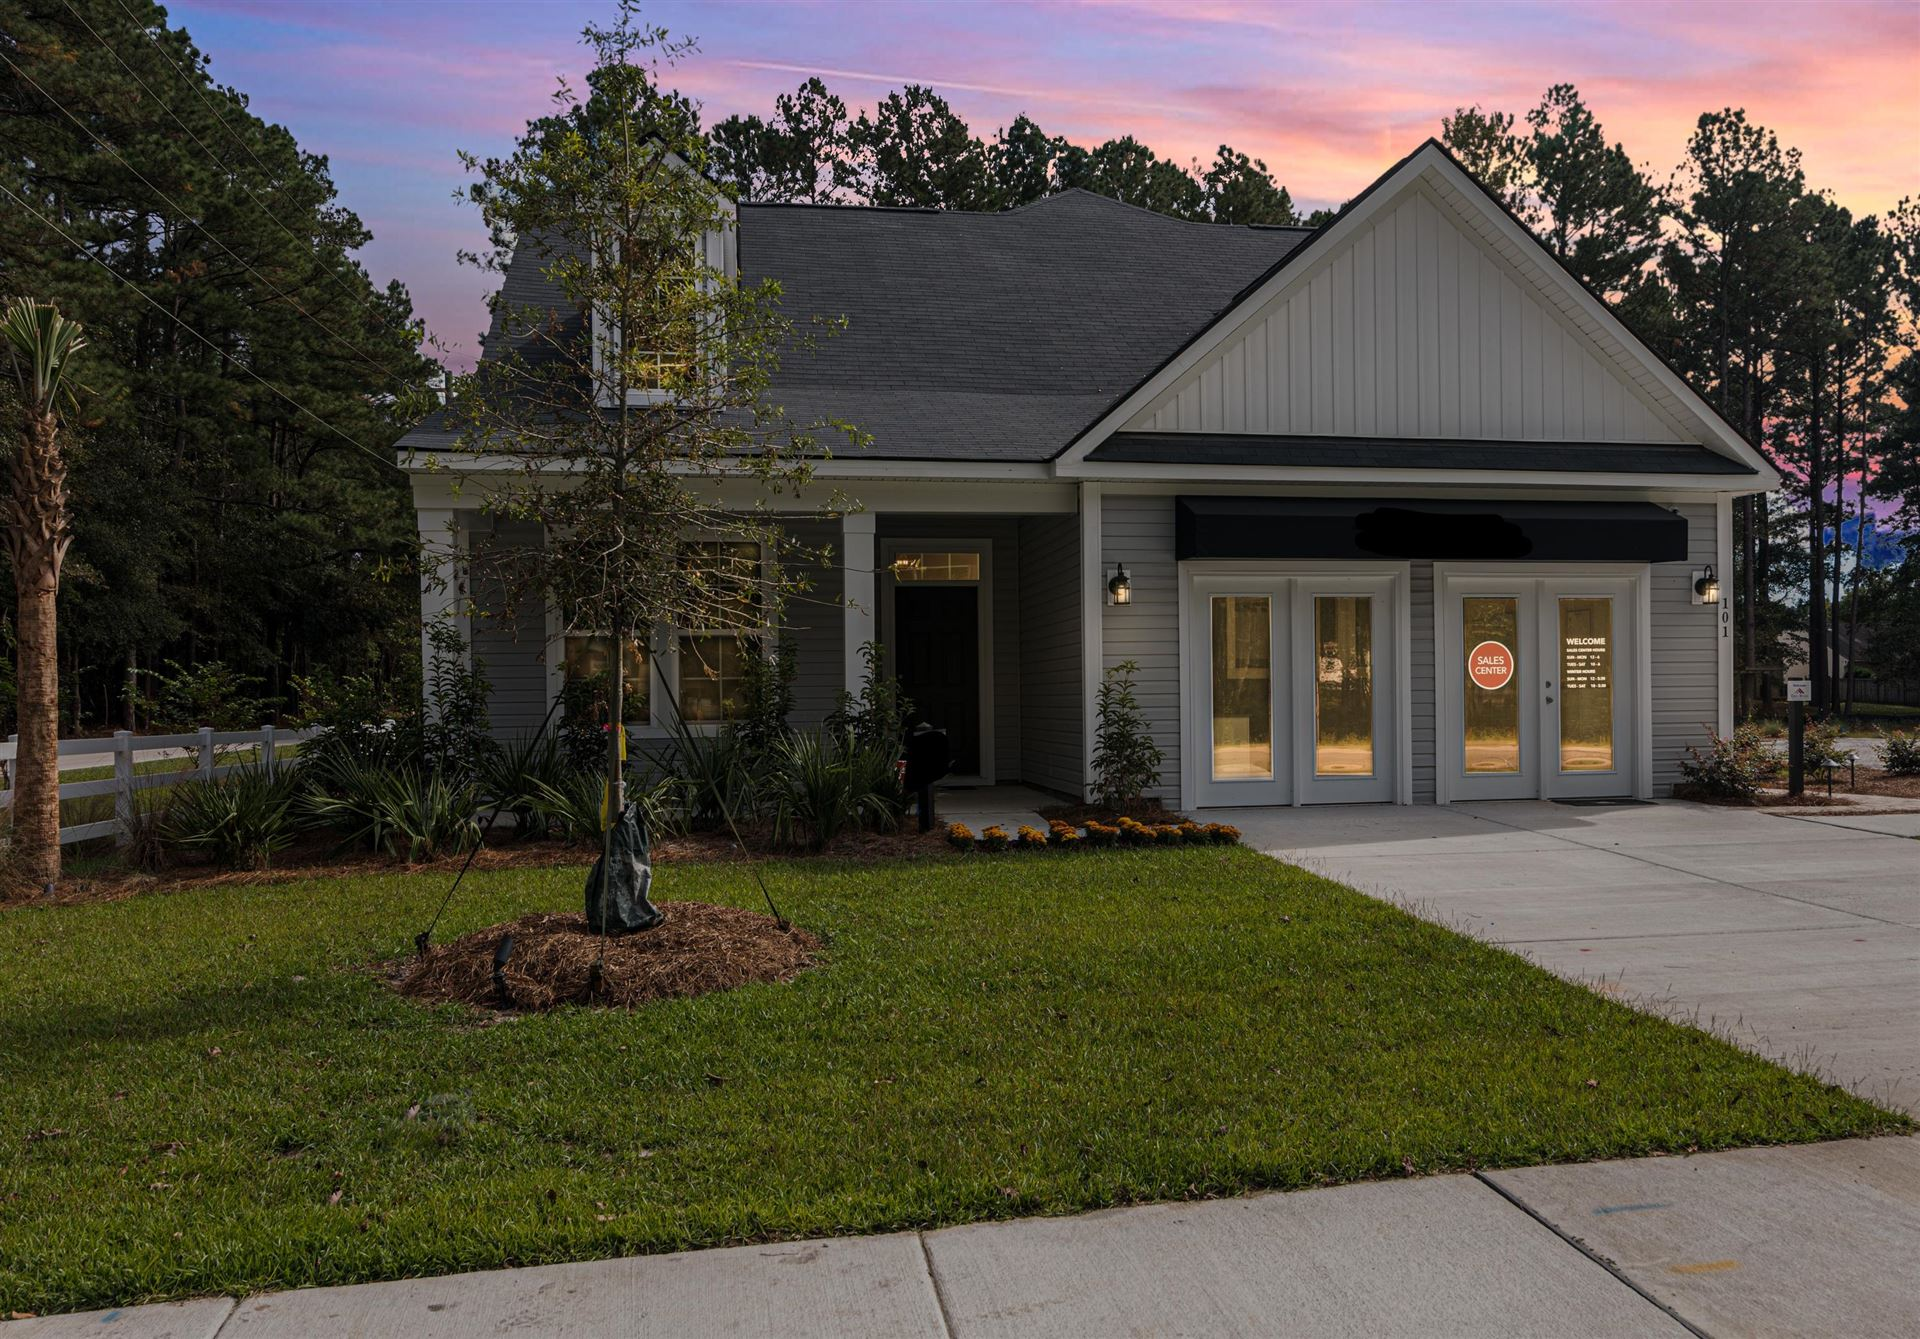 Photo of 101 Caleb Court, Ladson, SC 29456 (MLS # 21002156)